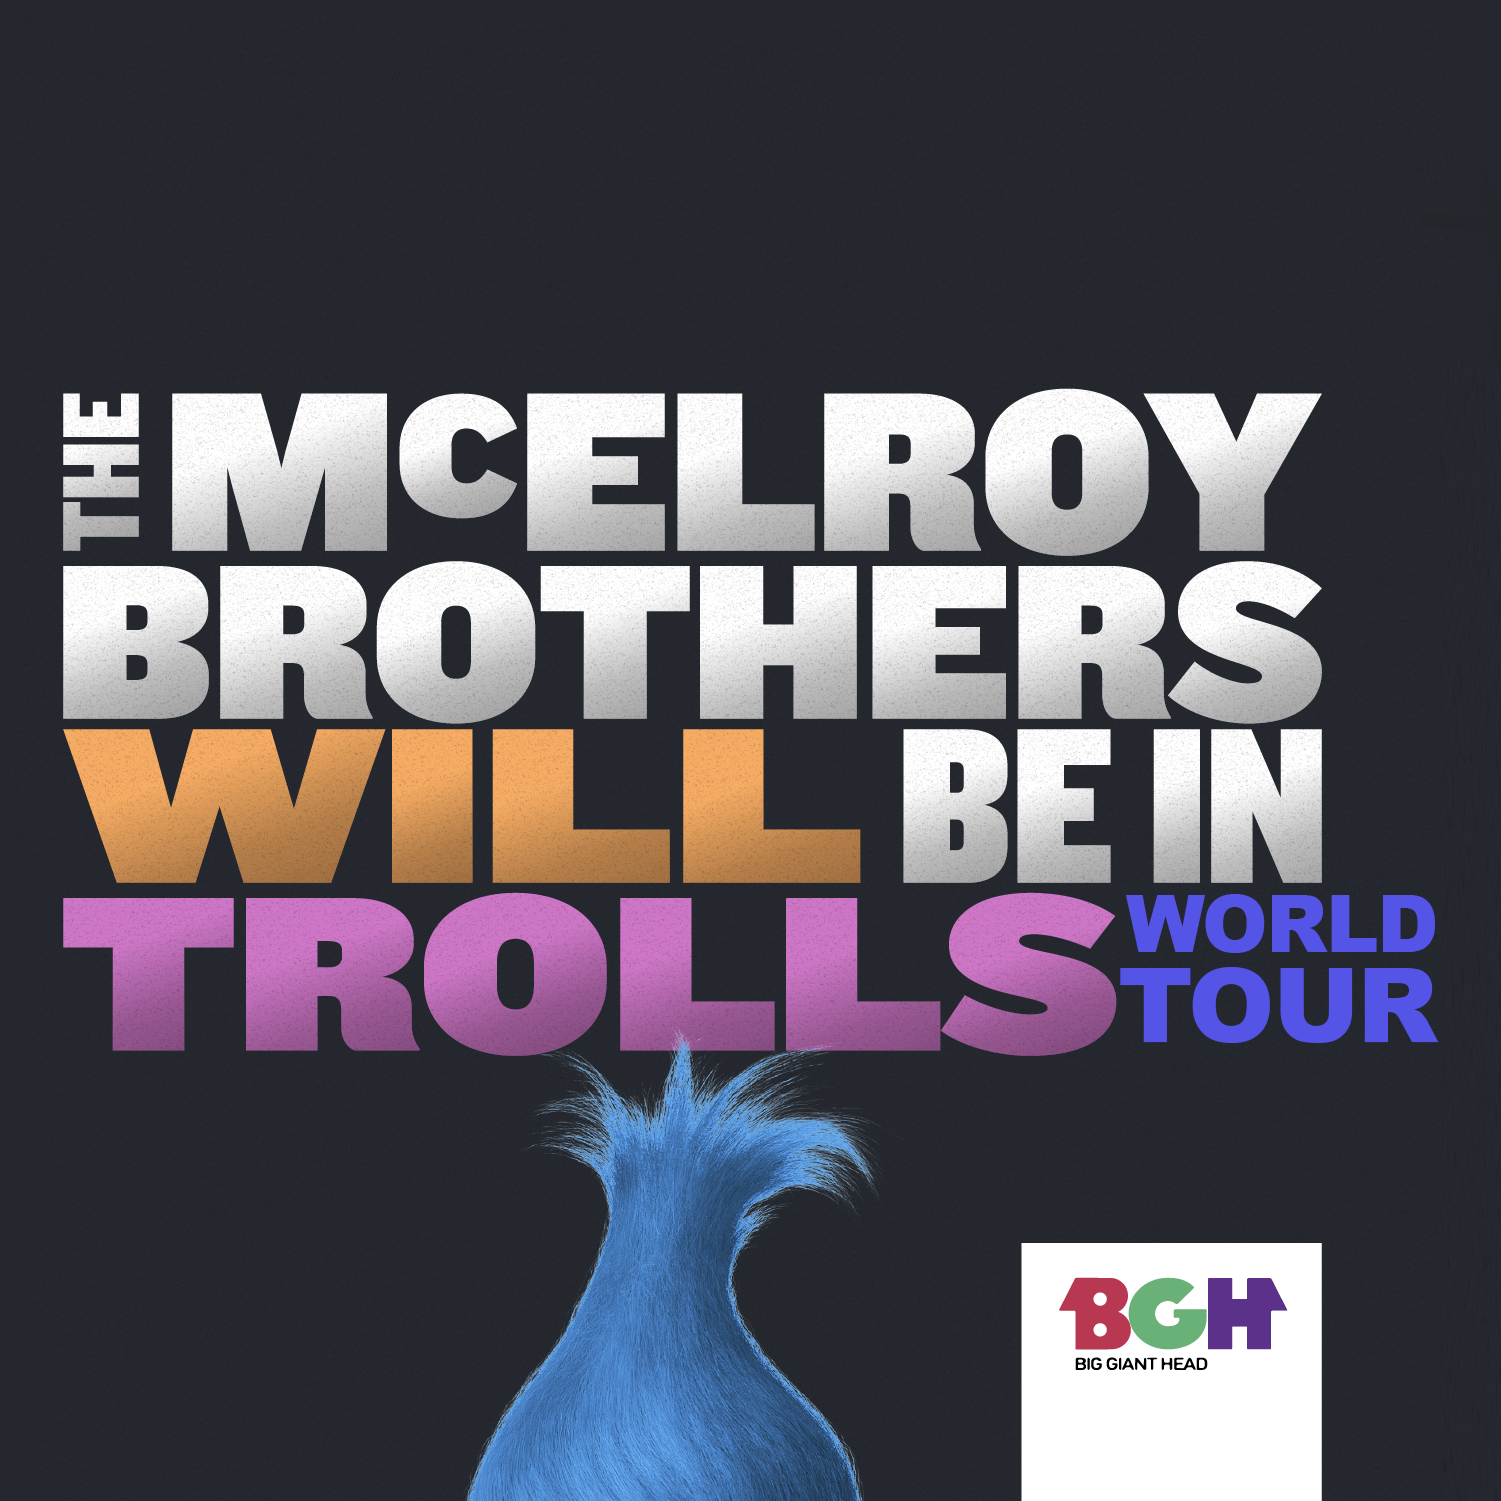 The McElroy Brothers Will Be In Trolls World Tour show art